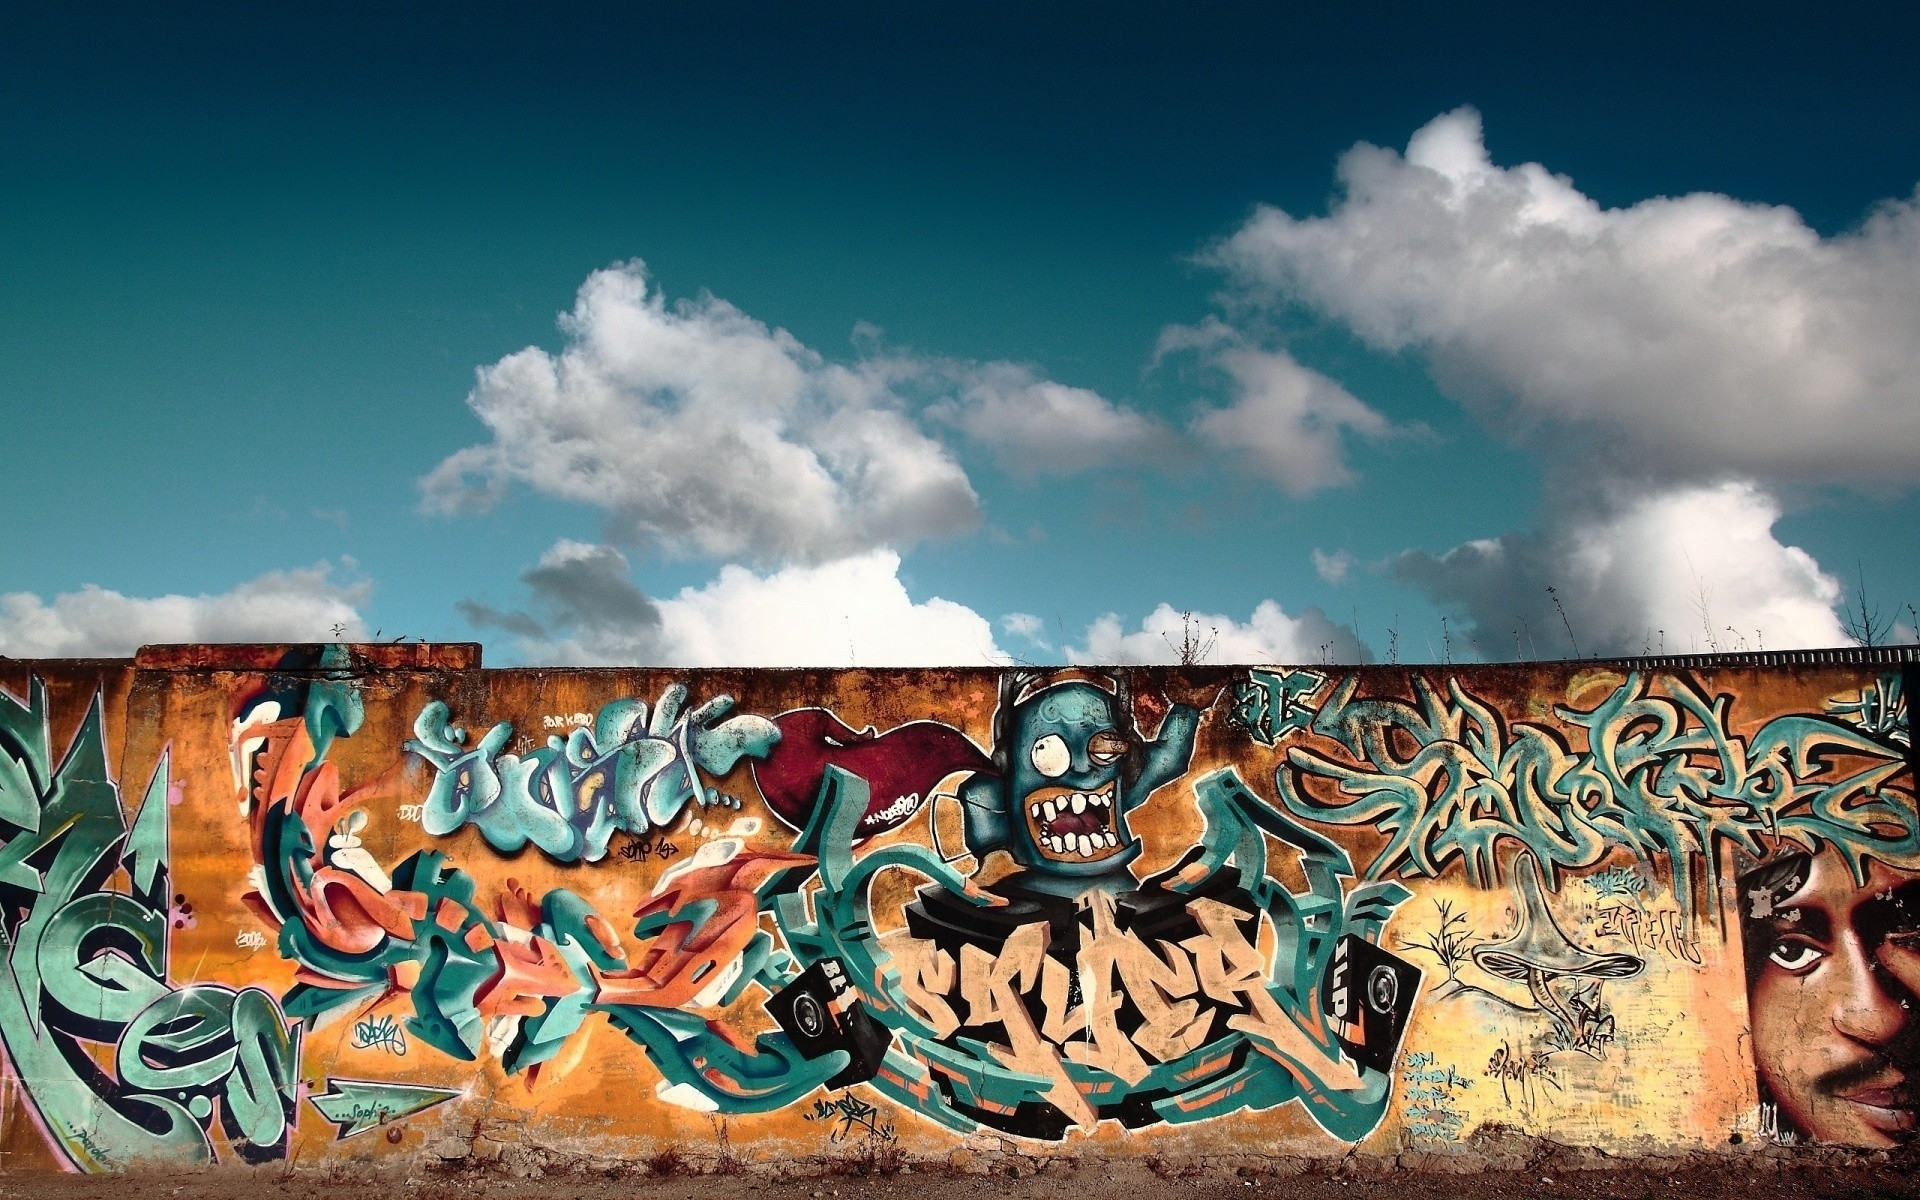 Graffiti Wall Art. Android Wallpapers For Free. Throughout Most Popular Graffiti Wall Art (Gallery 8 of 20)